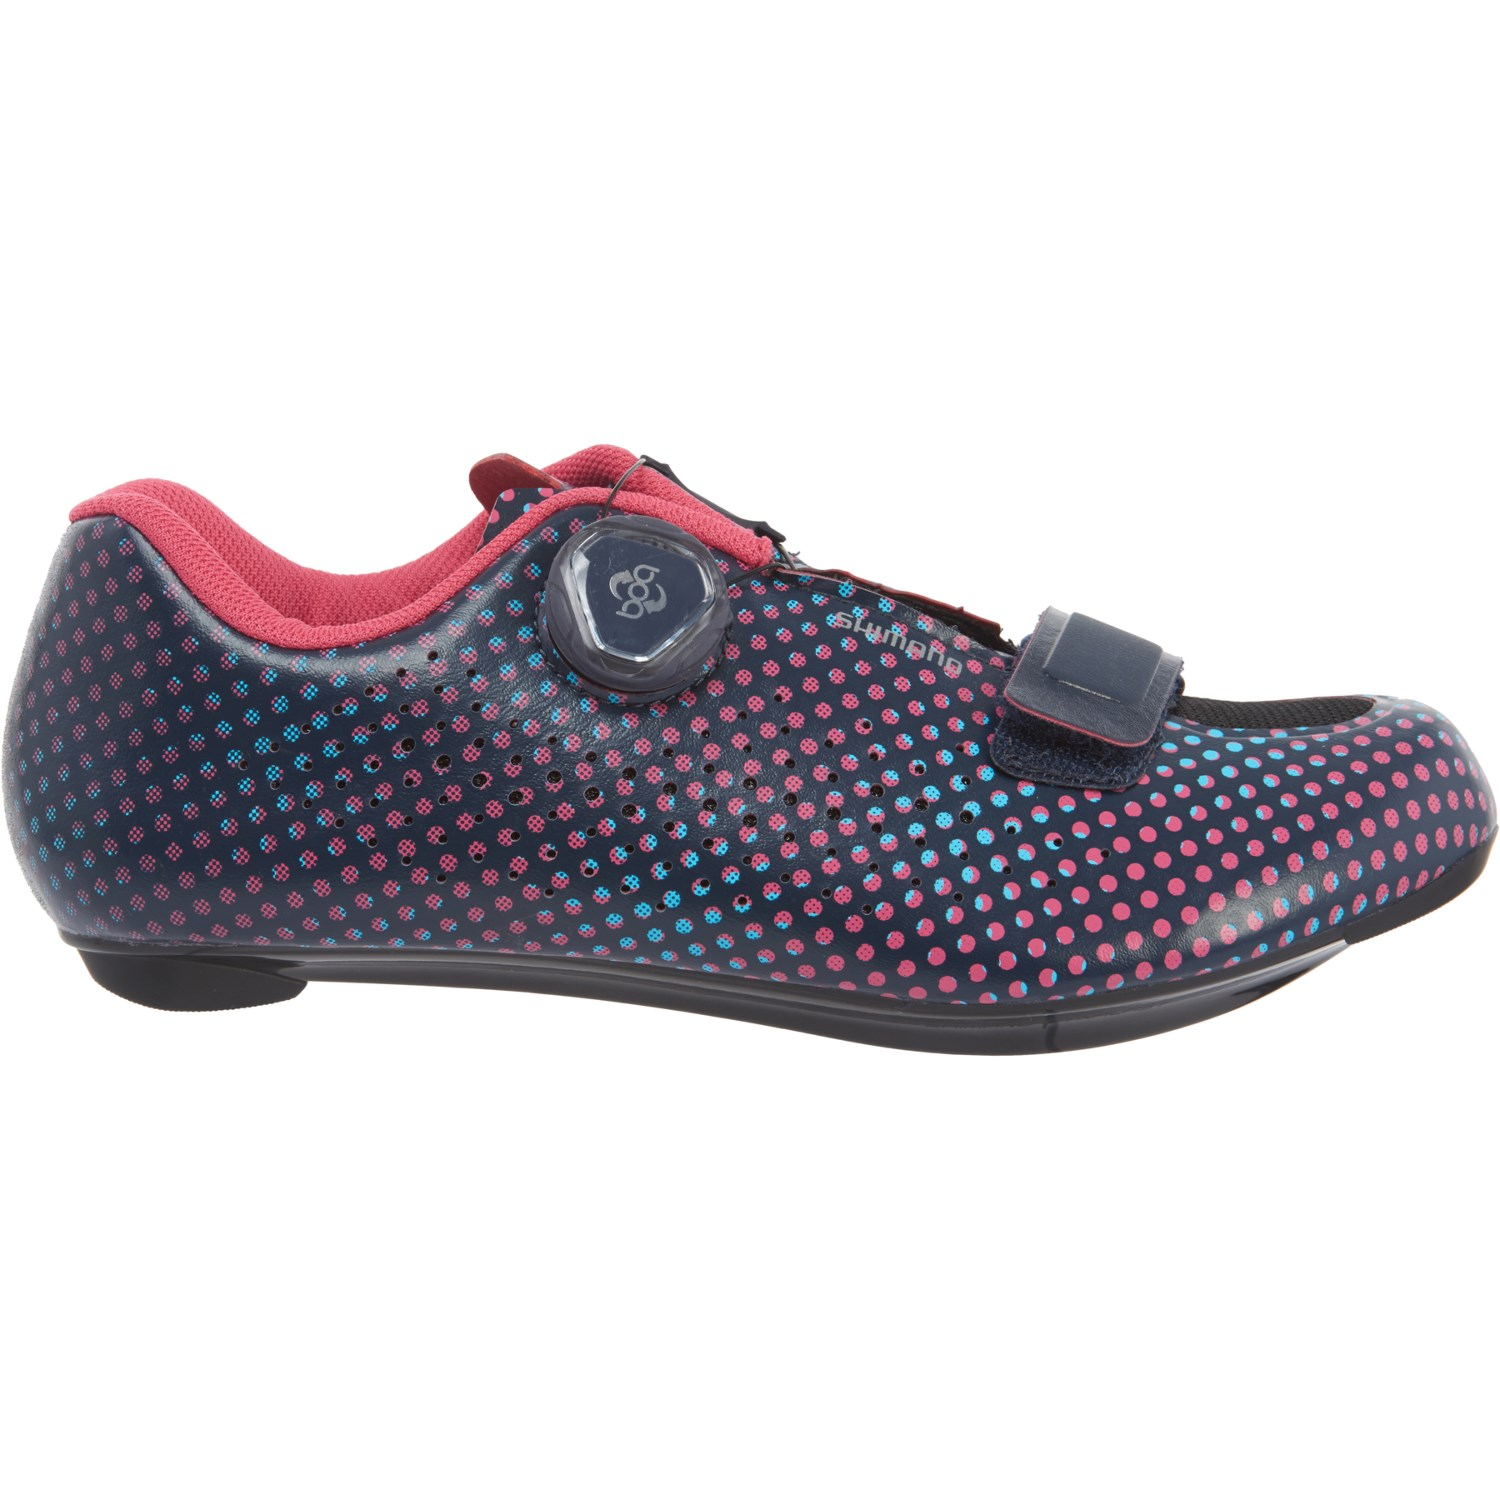 30c2003d952 Shimano RP501 Cycling Shoes (For Women) - Save 46%